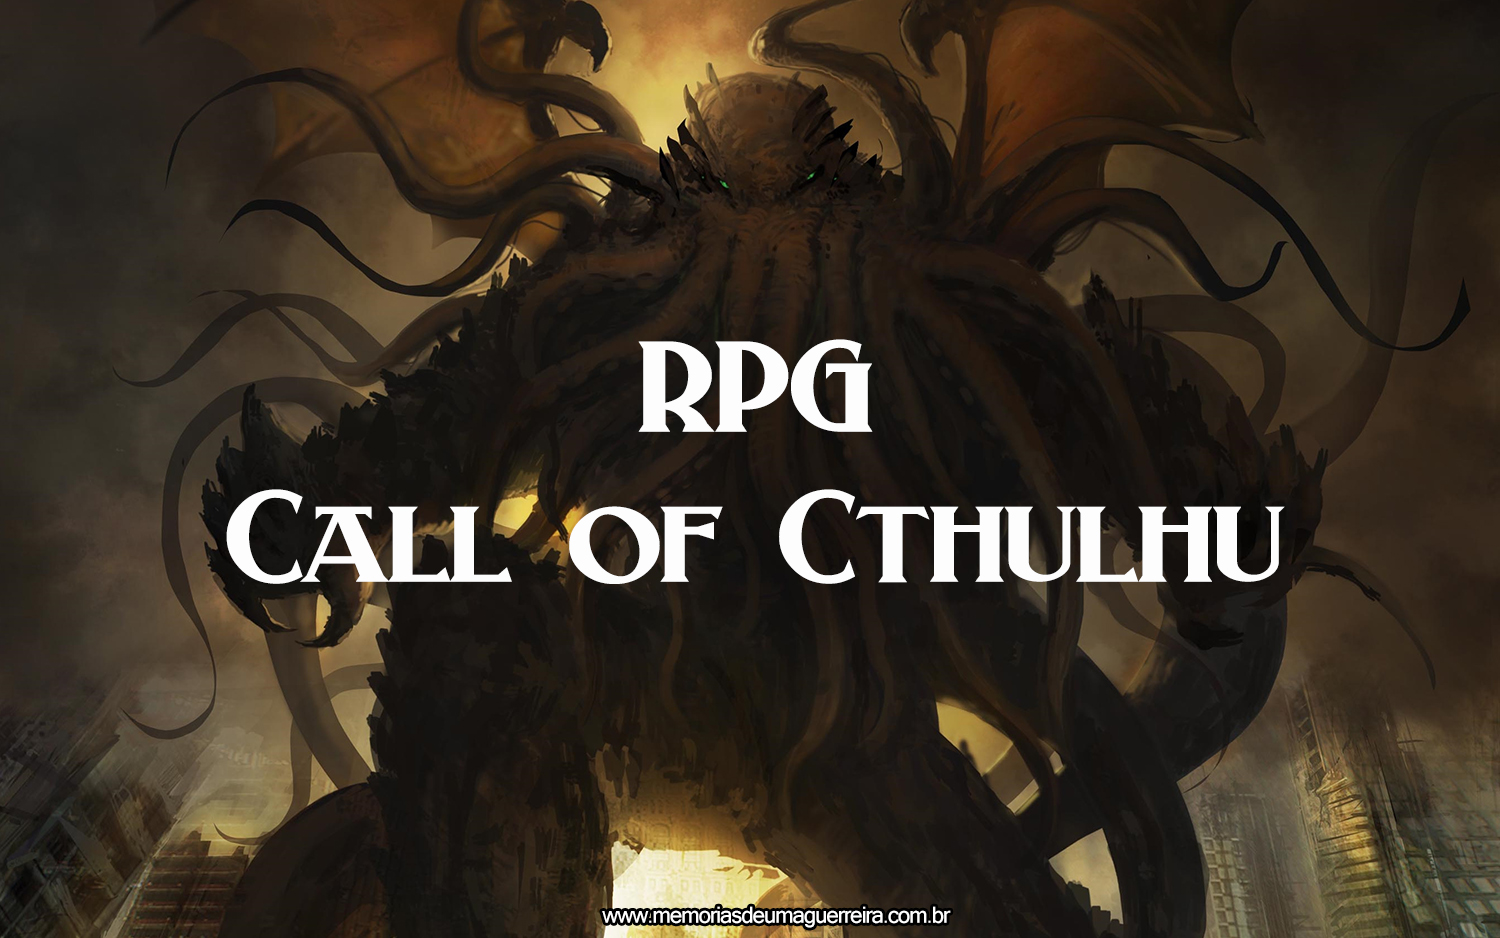 RPG Call of Cthulhu